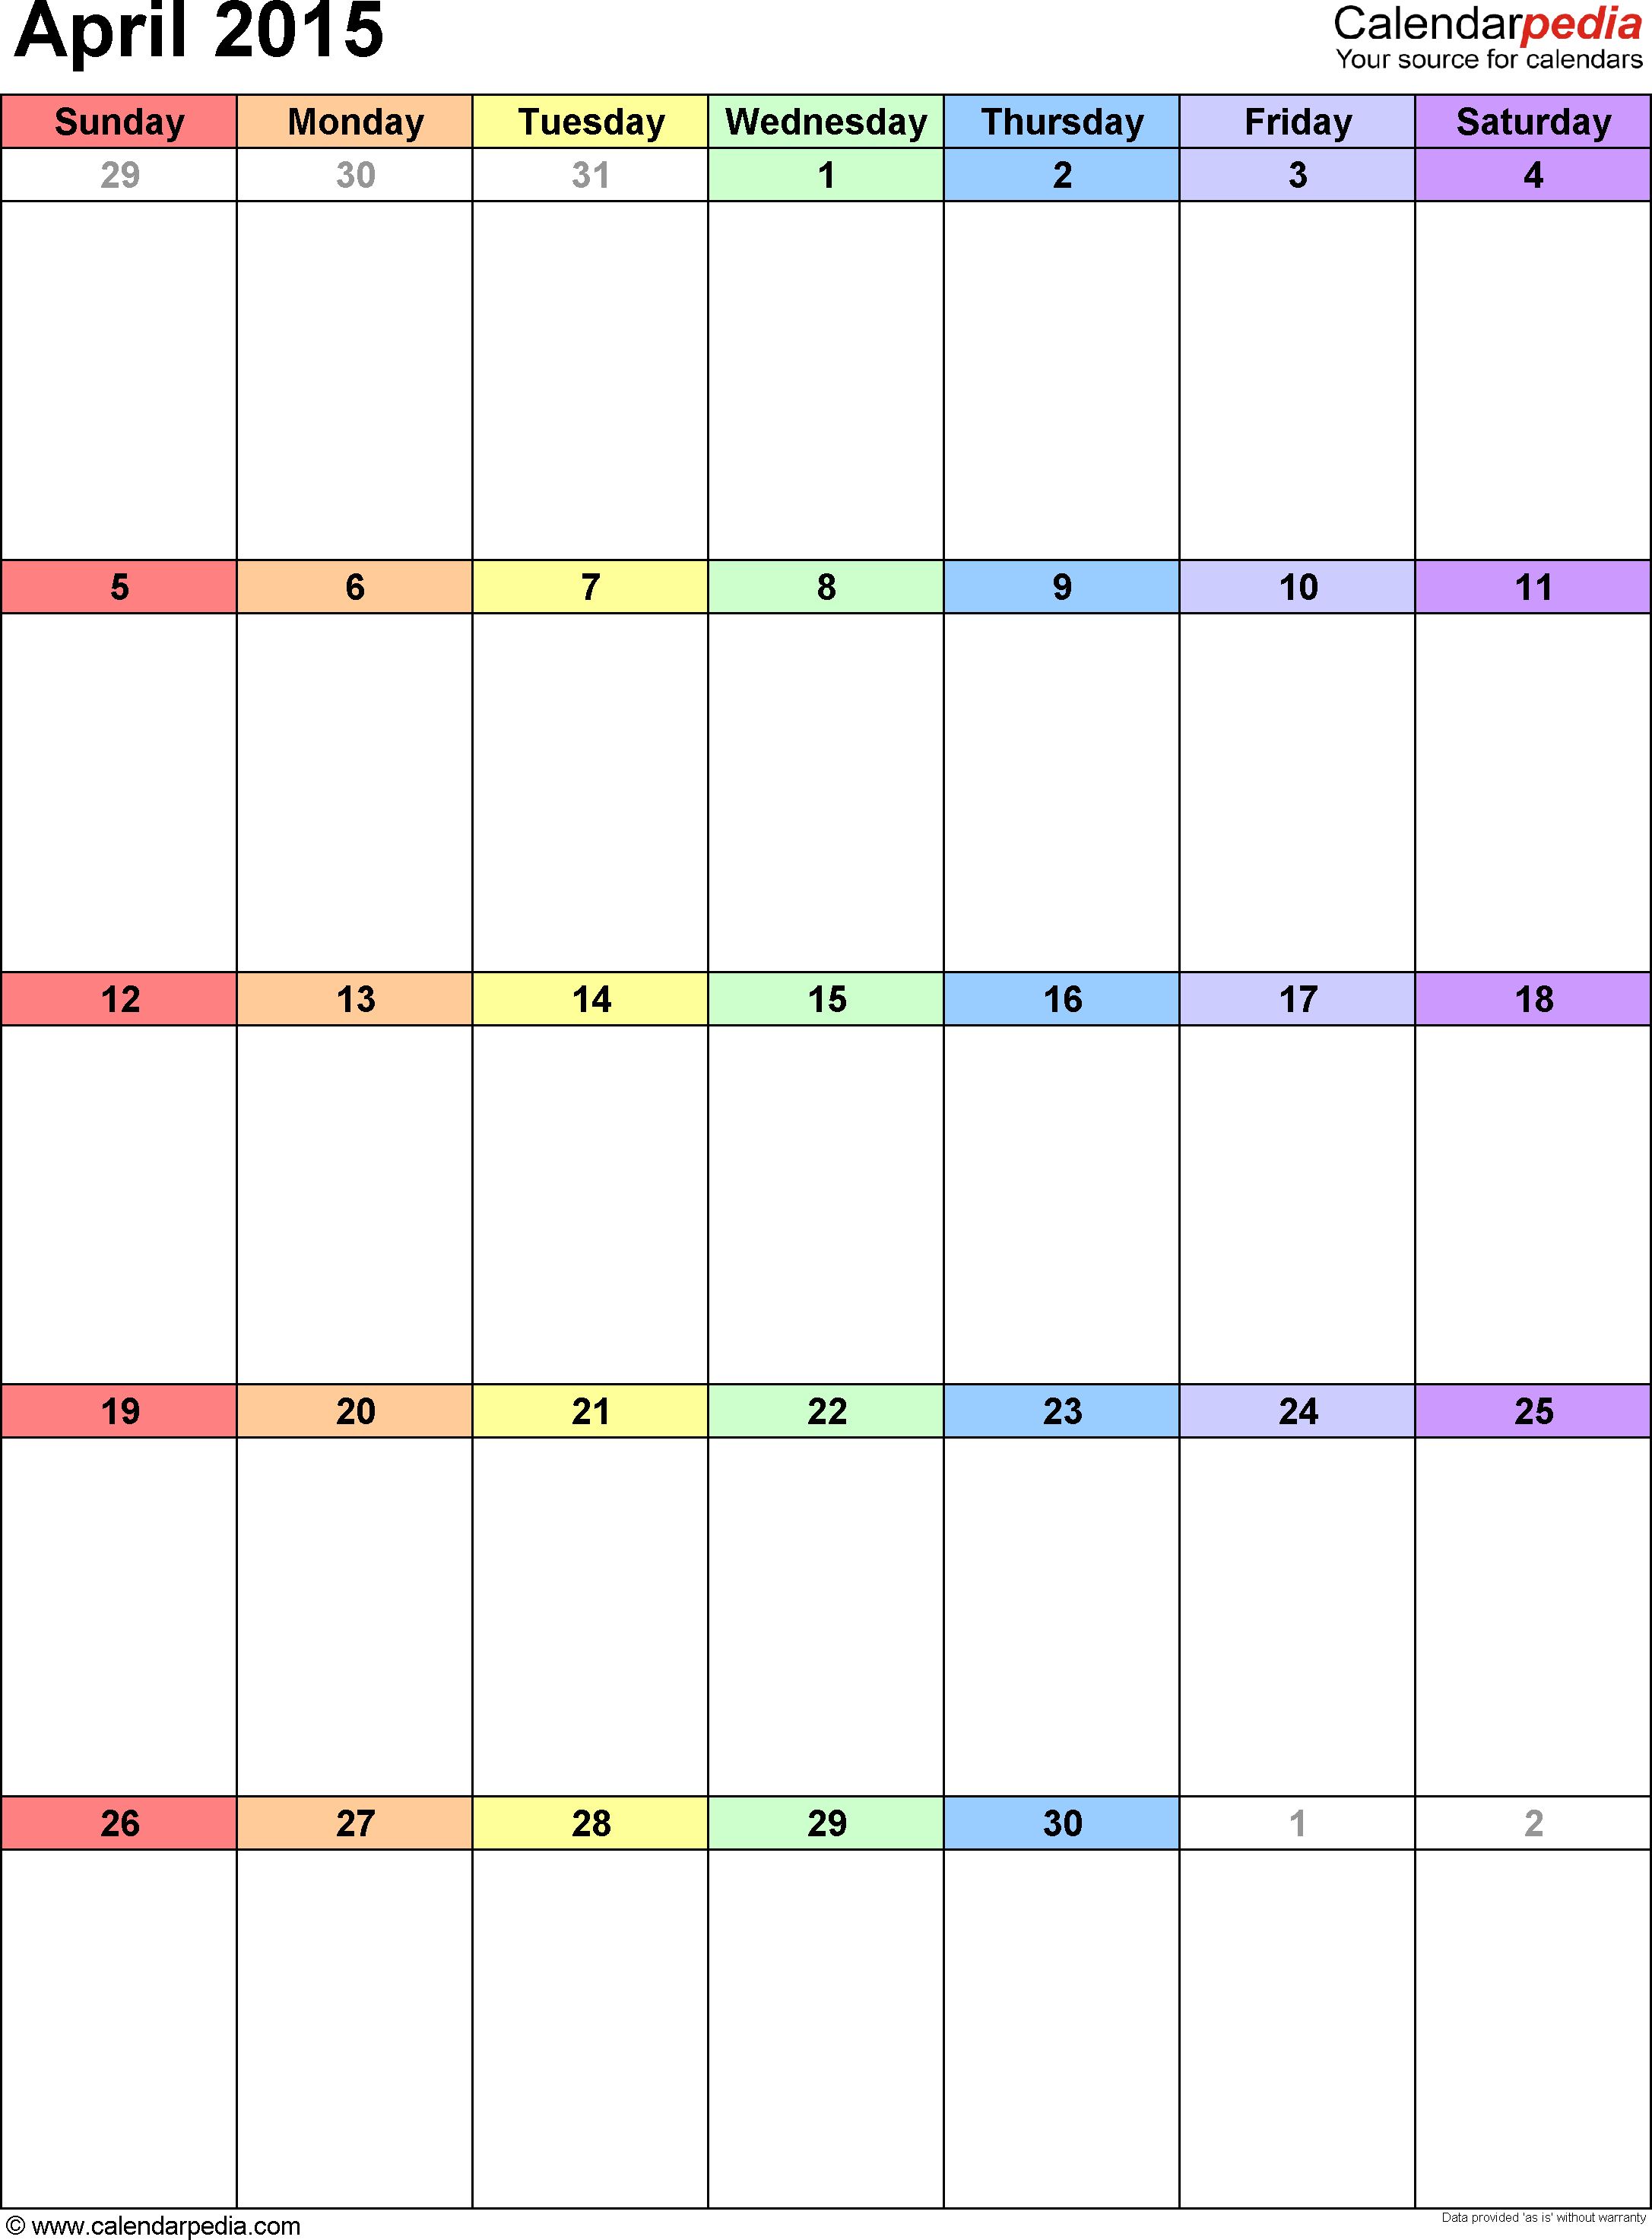 April 2015 calendar as printable Word, Excel & PDF templates